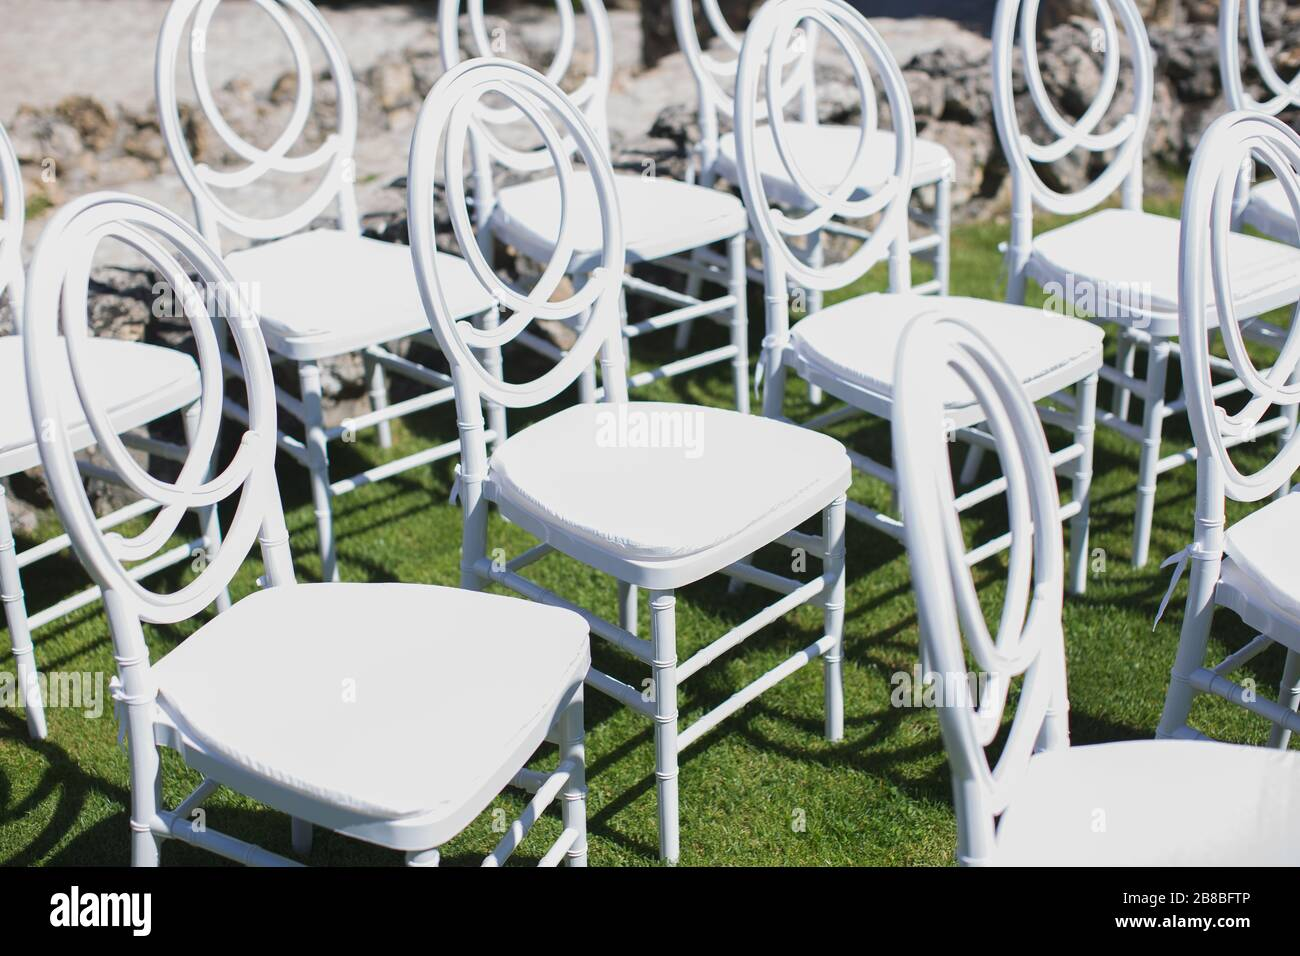 White Chair Decorating For A Wedding Ceremony On A Green Lawn Stock Photo Alamy